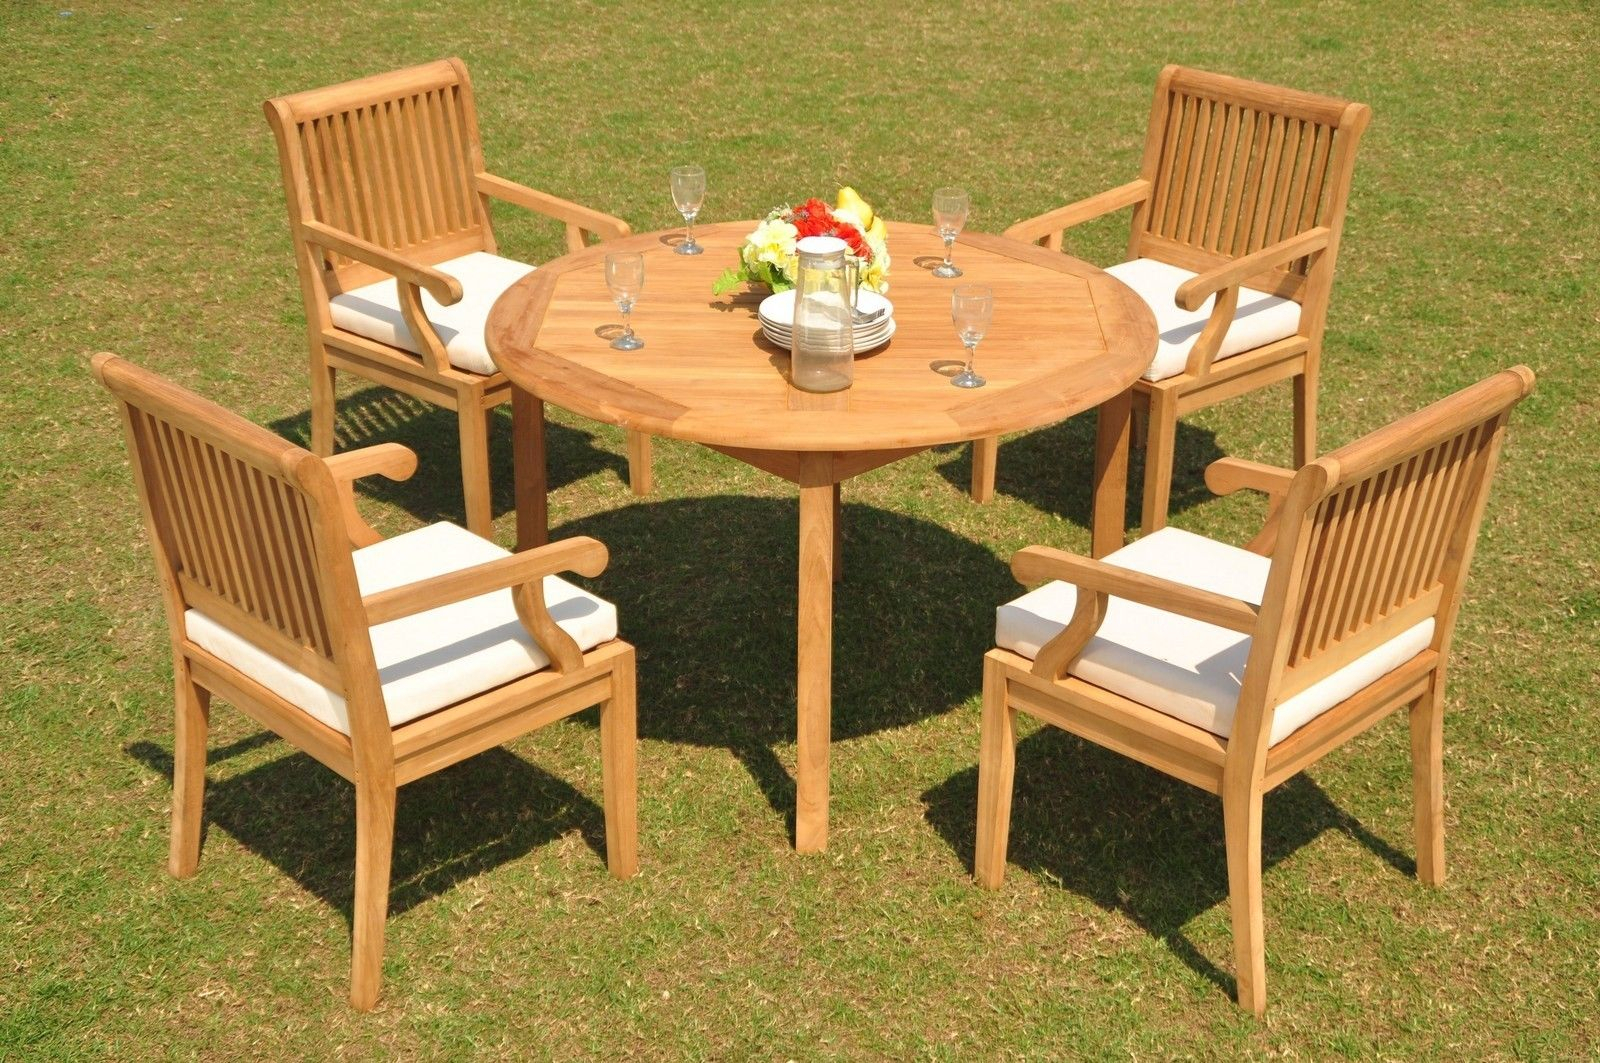 """Sack Grade A Teak Wood 5Pc Dining 48"""" Round Table 4 Arm Chair Set Outdoor  Patio Pertaining To Best And Newest Brooks Round Dining Tables (View 9 of 25)"""